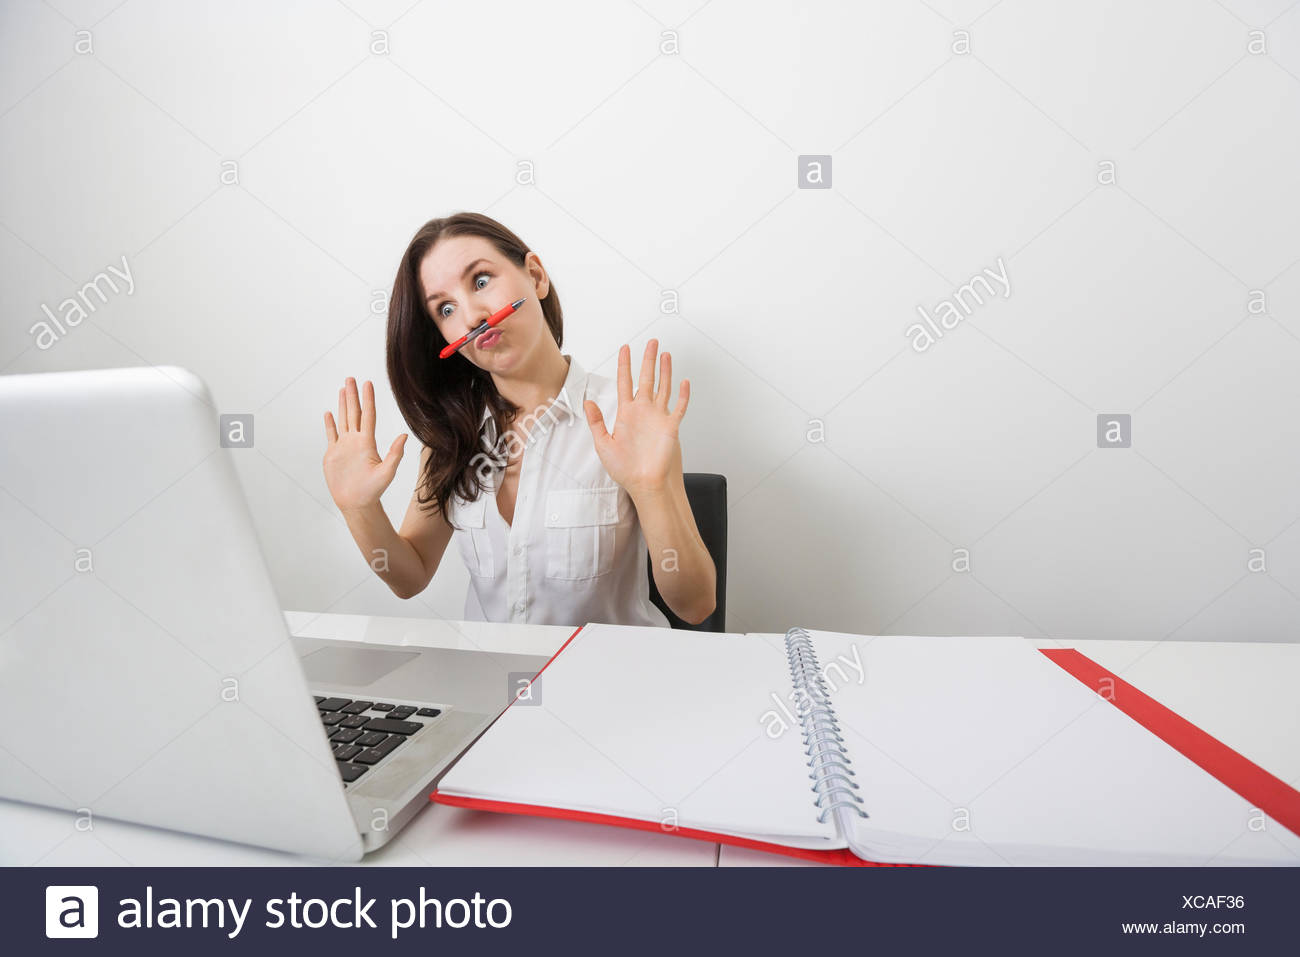 Astonished businesswoman looking at laptop while holding pen under nose in office - Stock Image